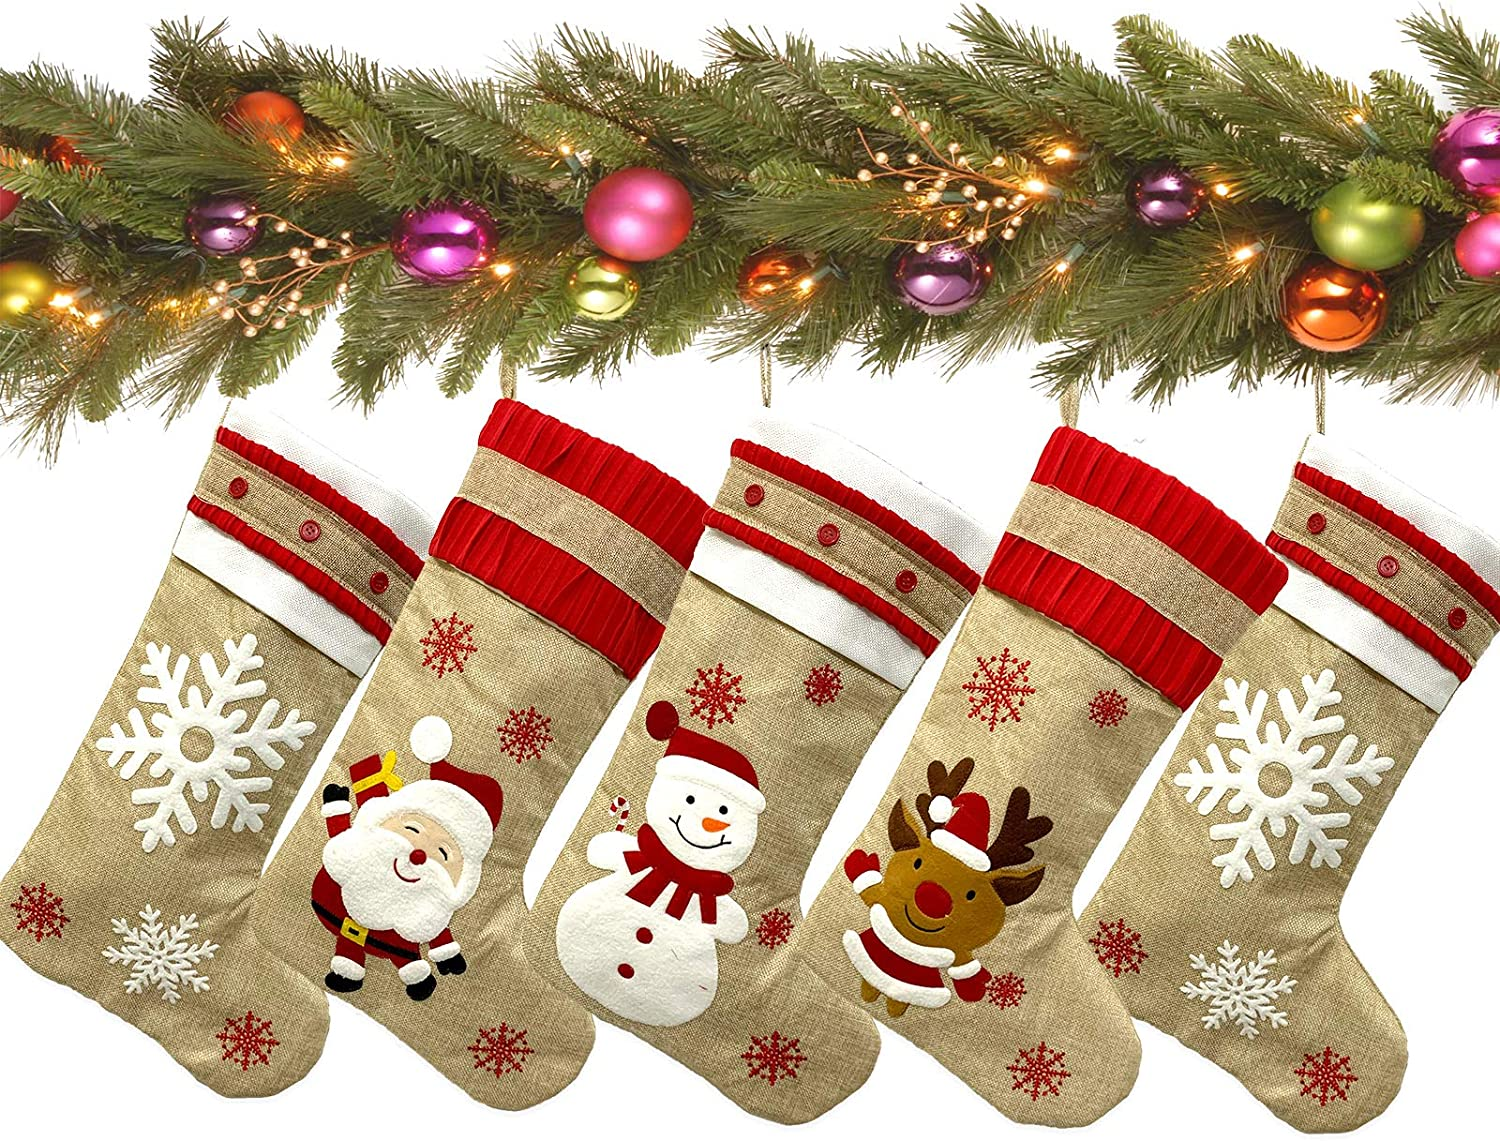 """LucaSng 2020 New Christmas Stockings 5 Pack for Family 19"""" Large Burlap Cartoon Xmas Stocking for Home Décor Rustic Farmhouse Stockings Set of 5 for Christmas Decorations"""